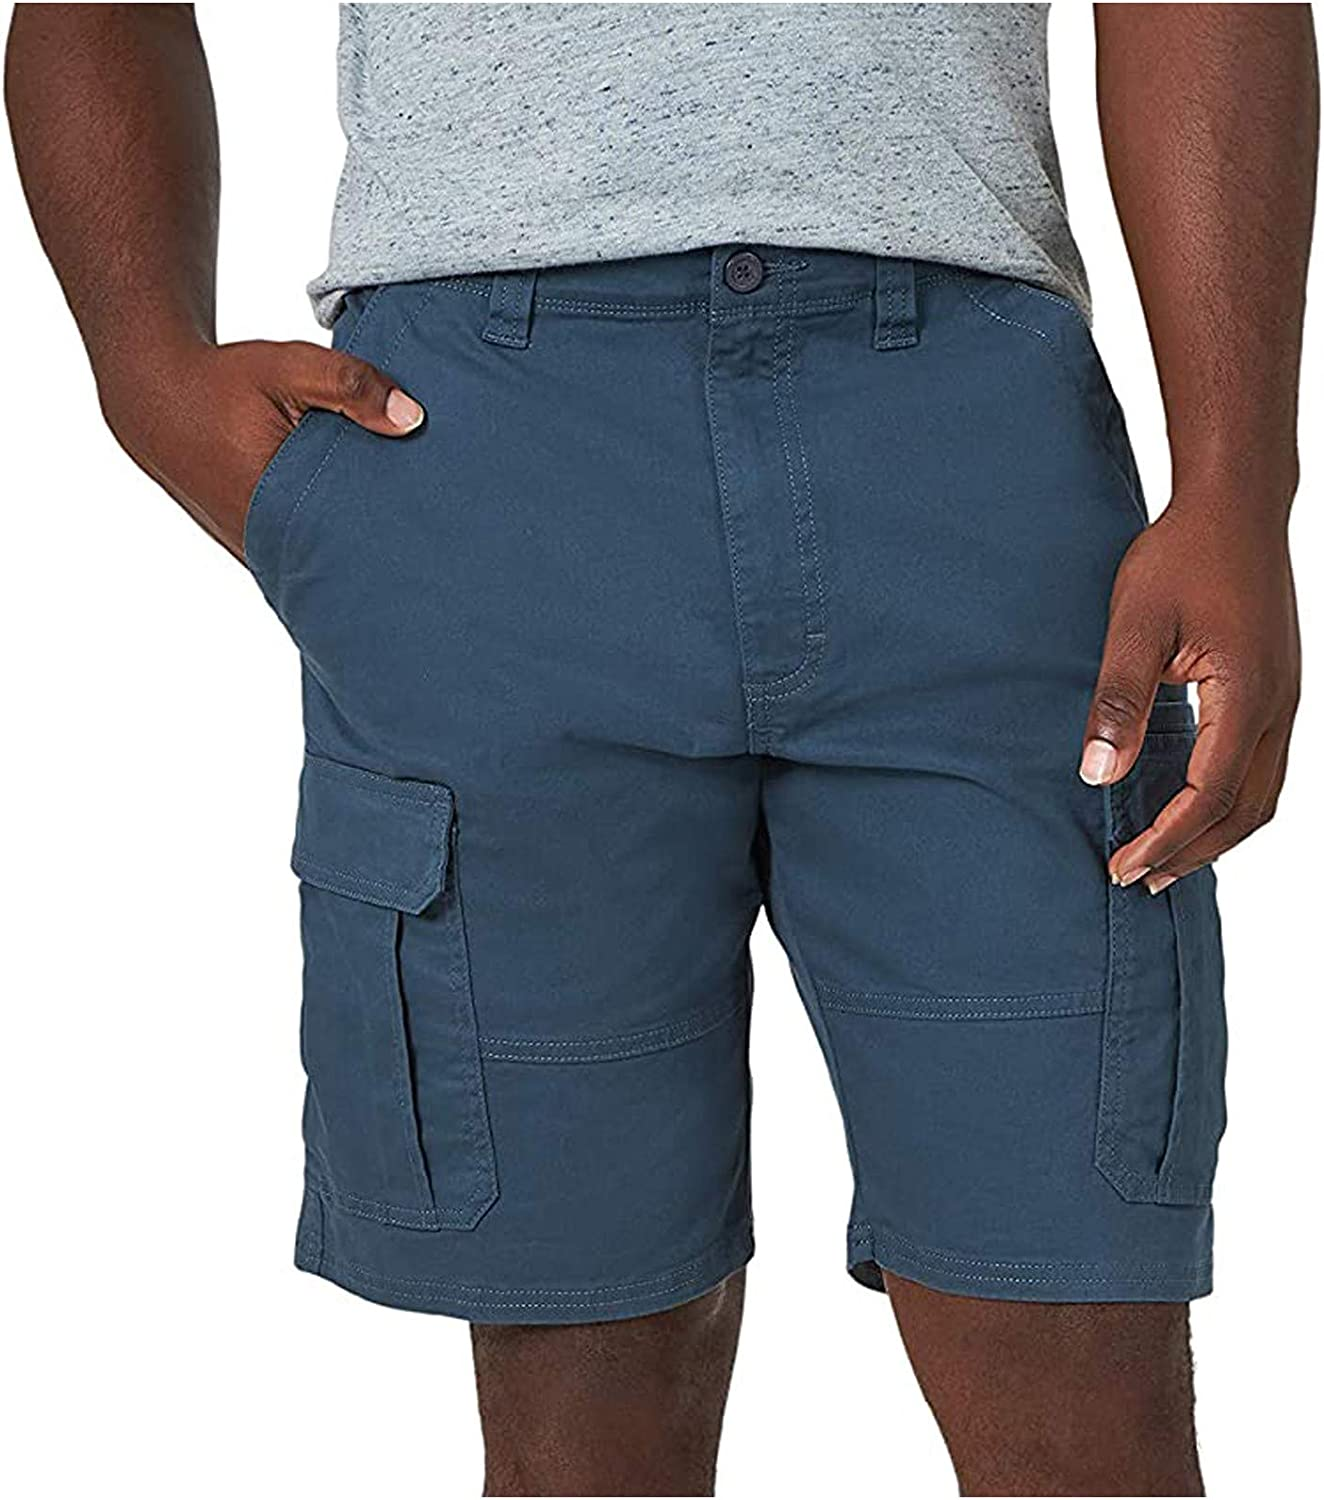 Men's Cotton Shorts Summer Ripstop Work Cargo Hiking Camping Outdoor Casual Loose Fit Shorts with 4 Pockets